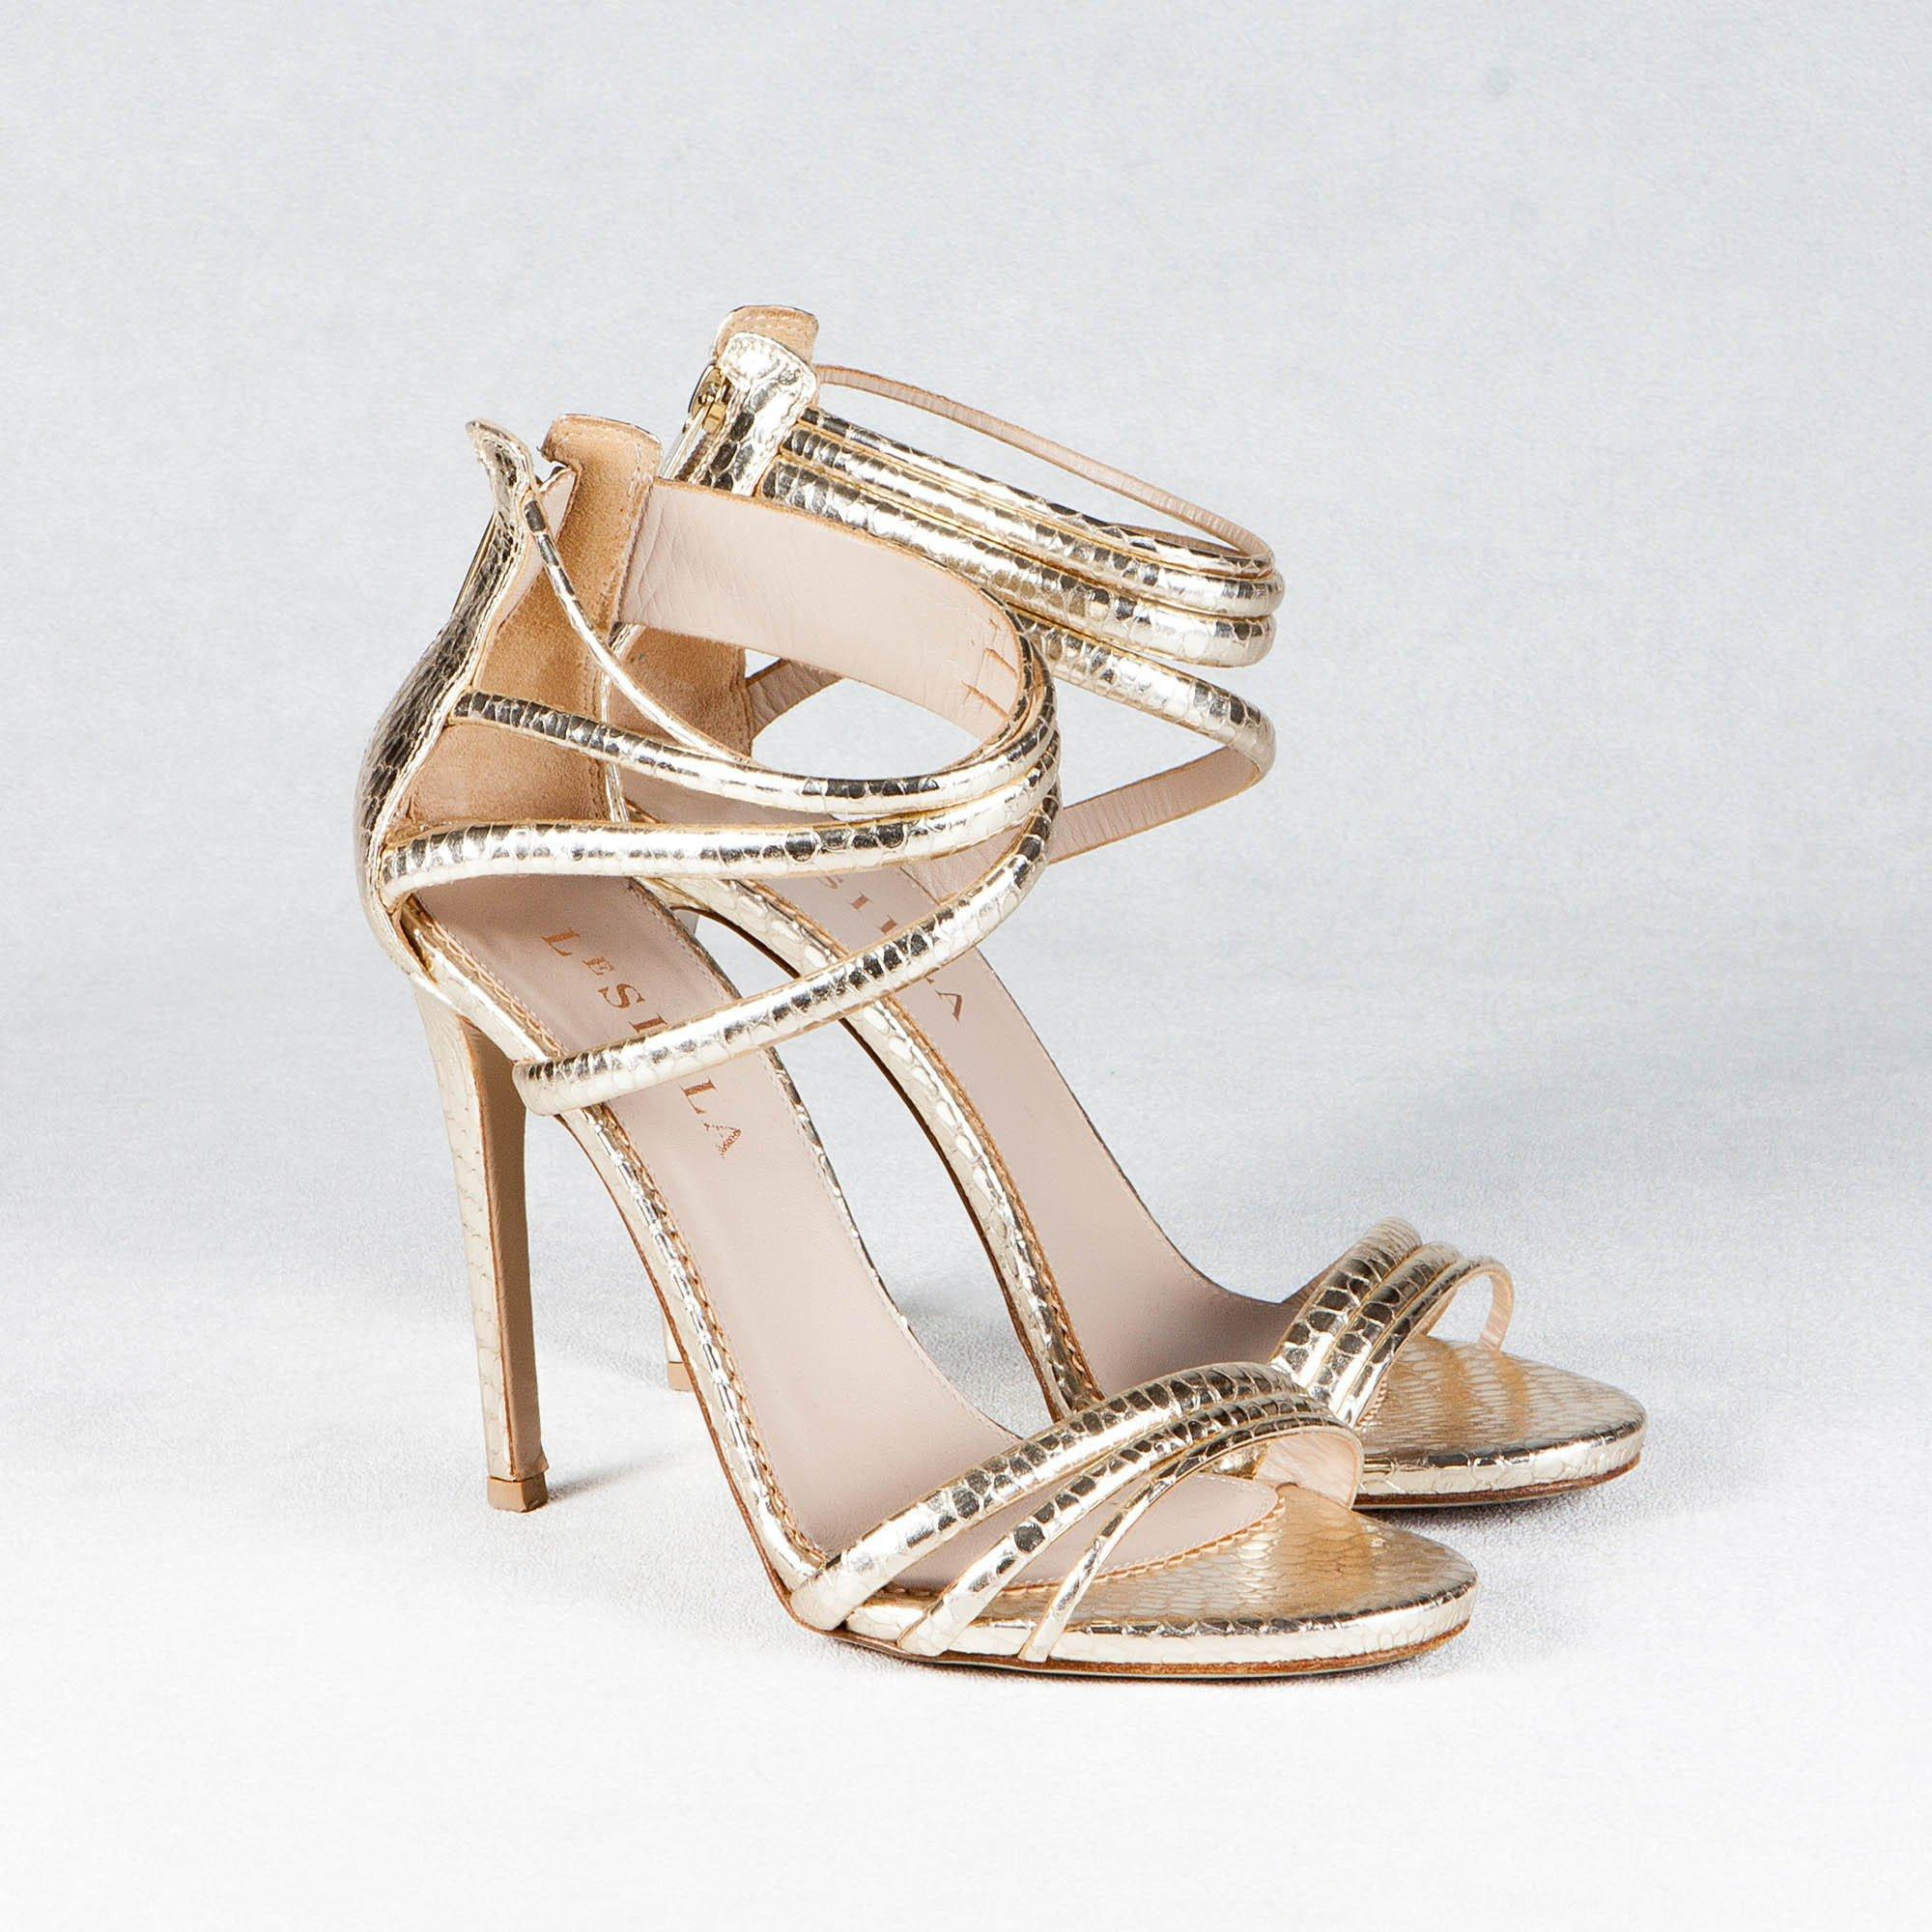 Le Silla Light Gold Python Embossed Strappy Sandals